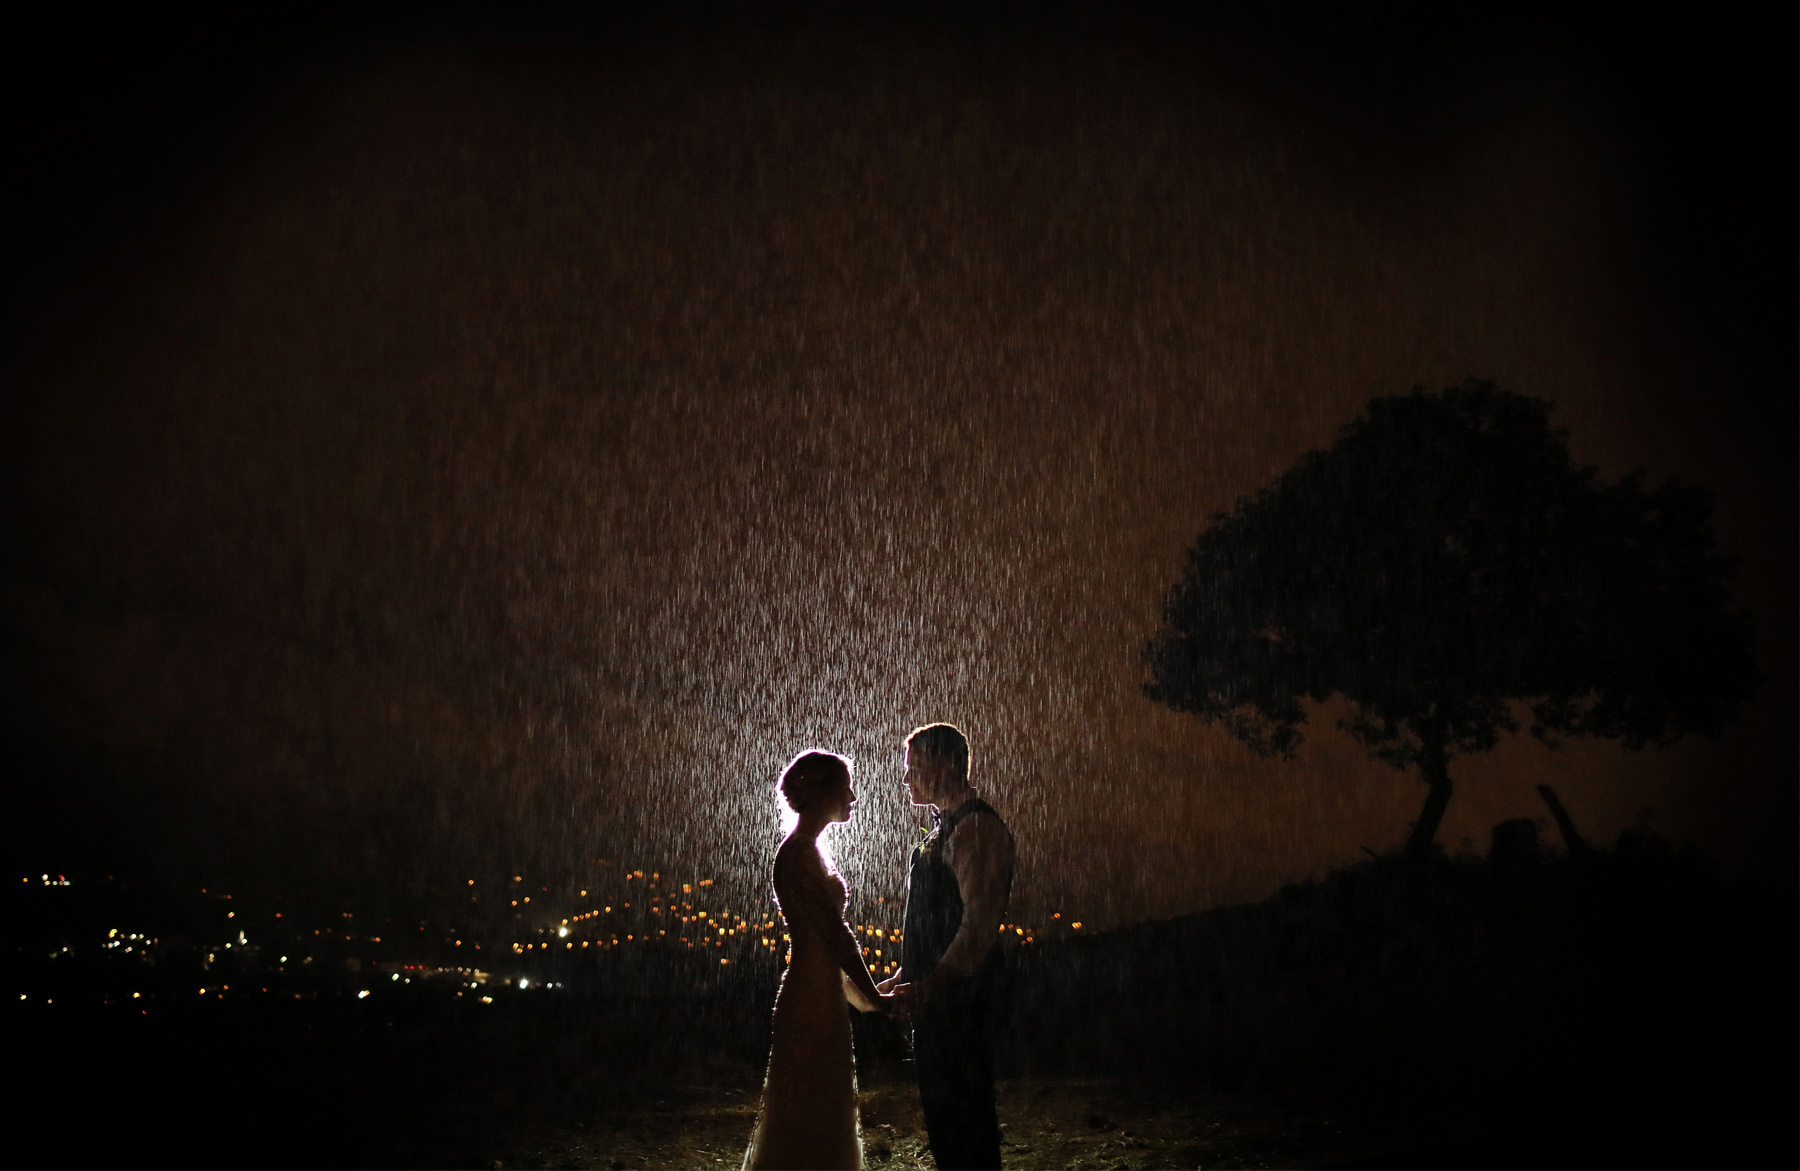 19-La-Canada-Flintridge-California-Wedding-Photographer-by-Andrew-Vick-Photography-Fall-Autumn-Destination-Reception-Bride-Groom-Night-Rain-Fawn-and-Jay.jpg